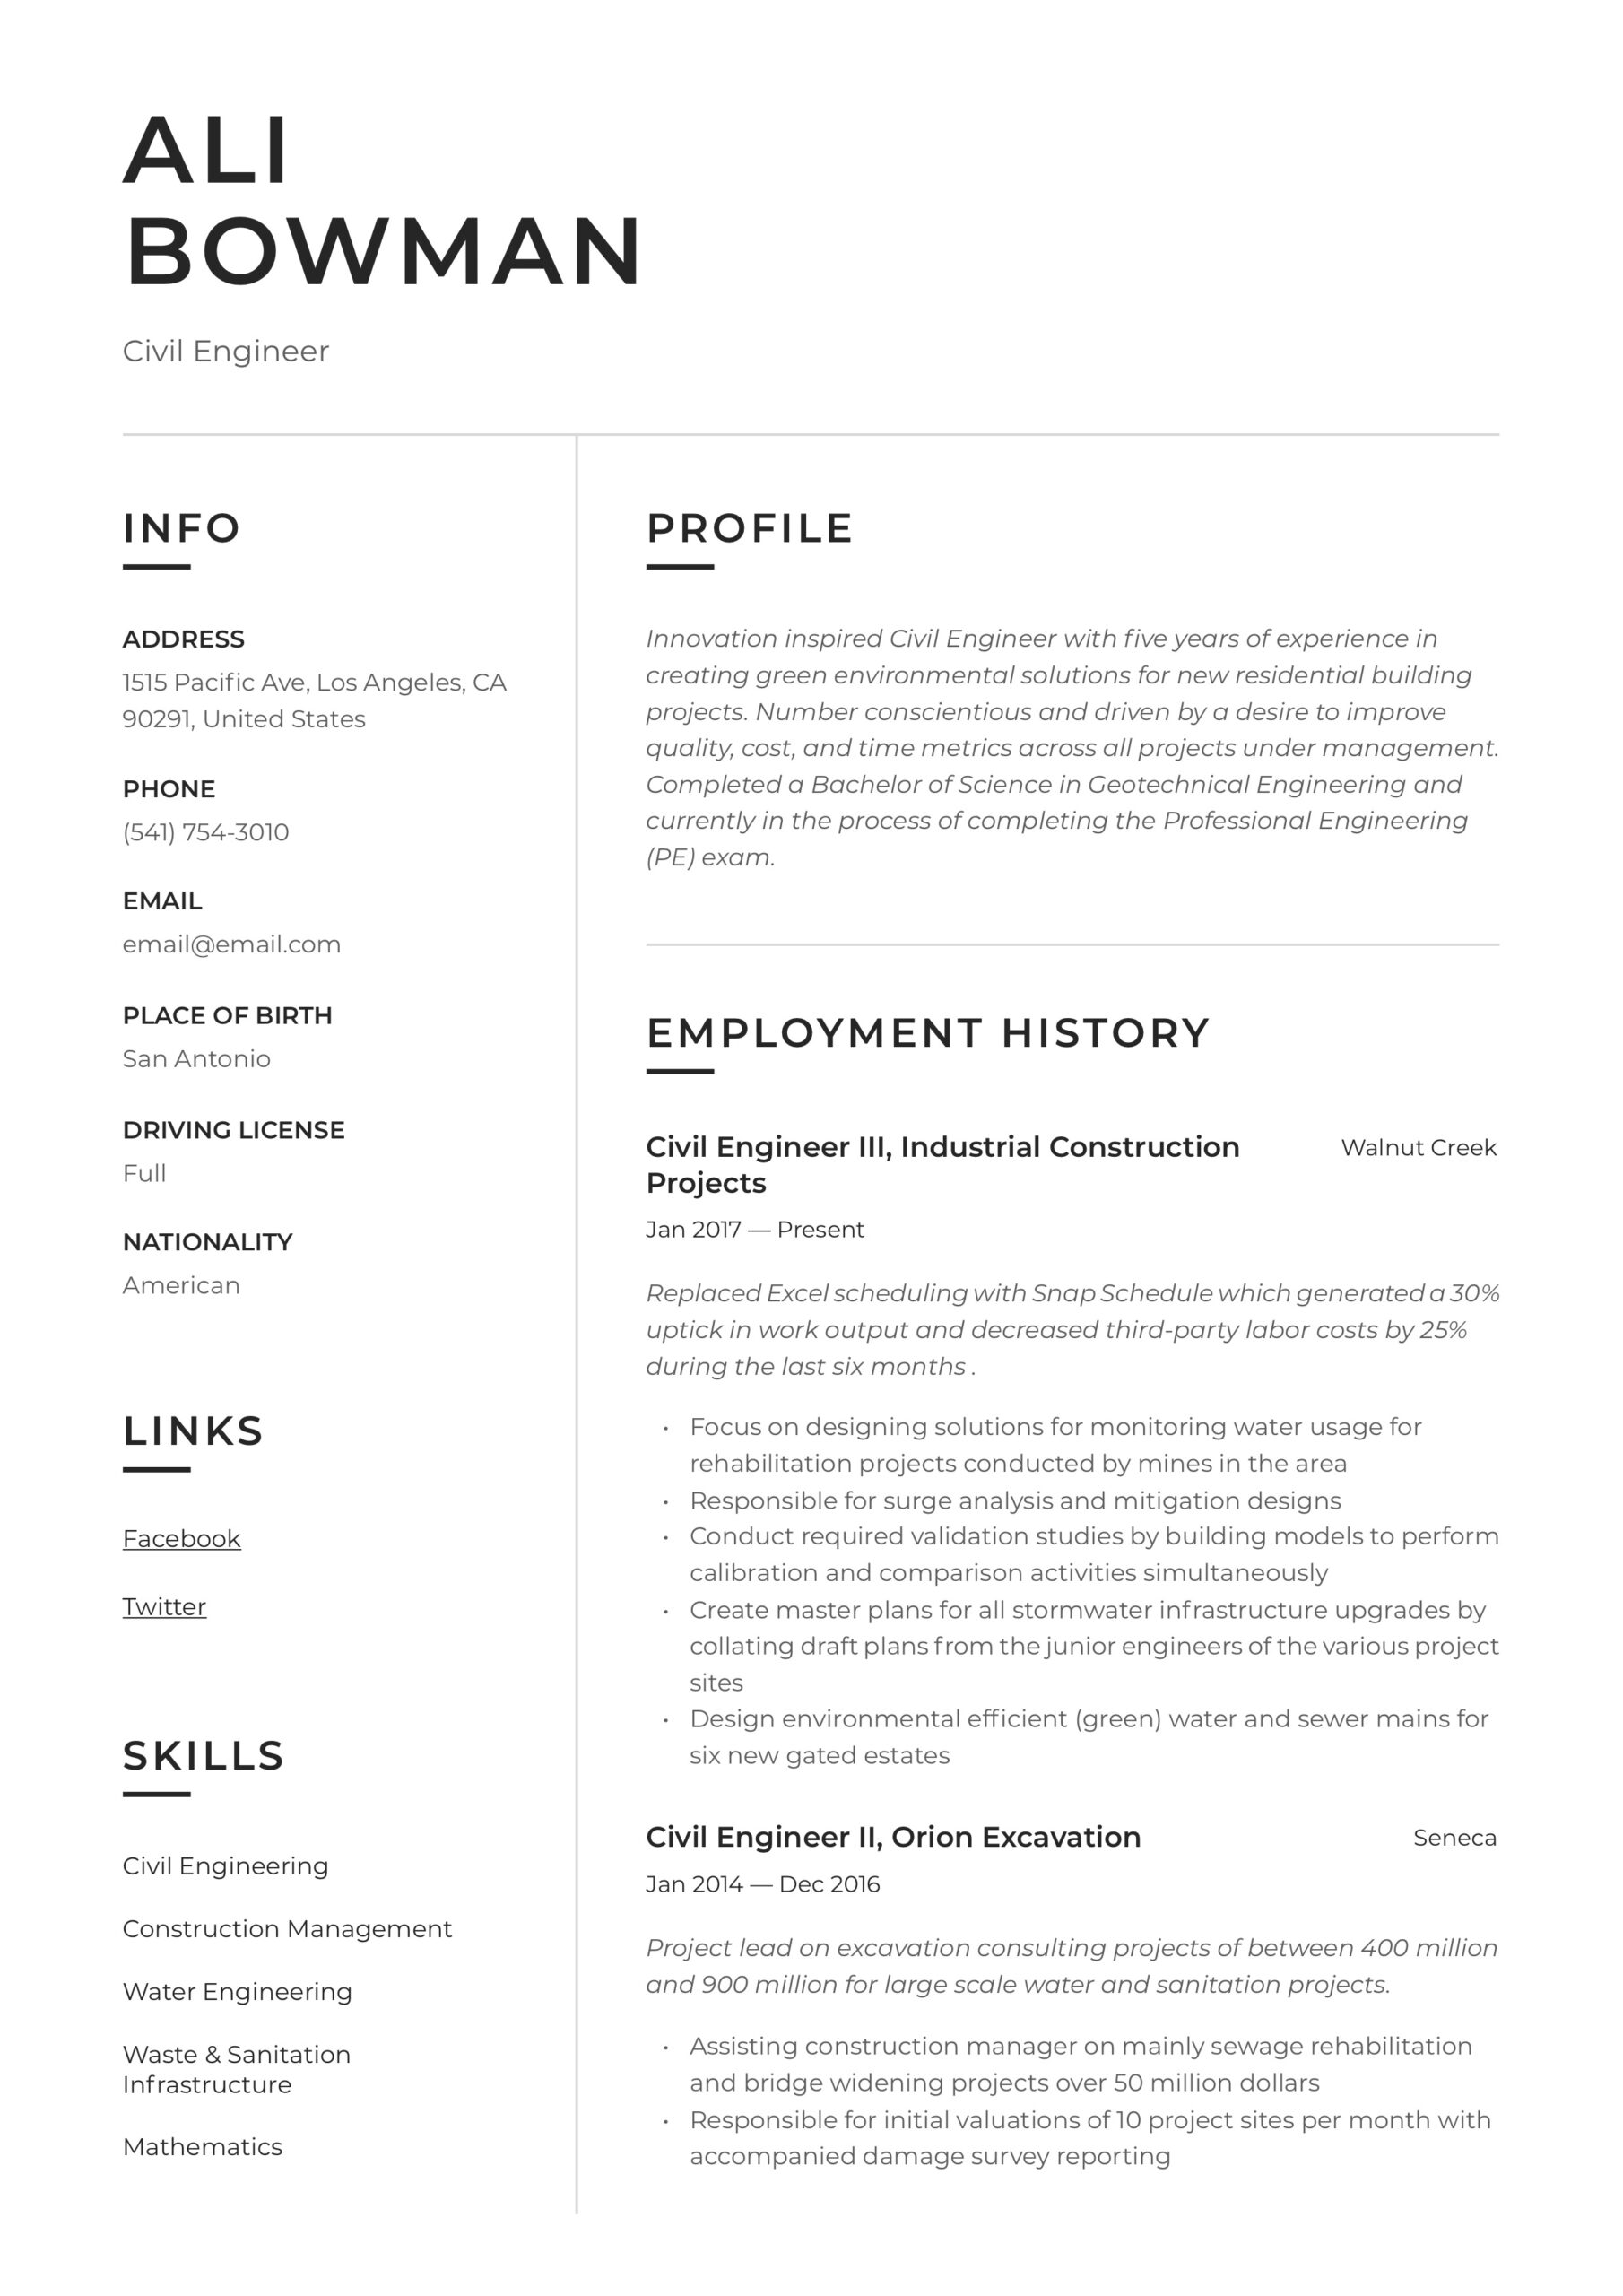 civil engineer resume writing guide templates structural designer tutor example objective Resume Civil Structural Designer Resume